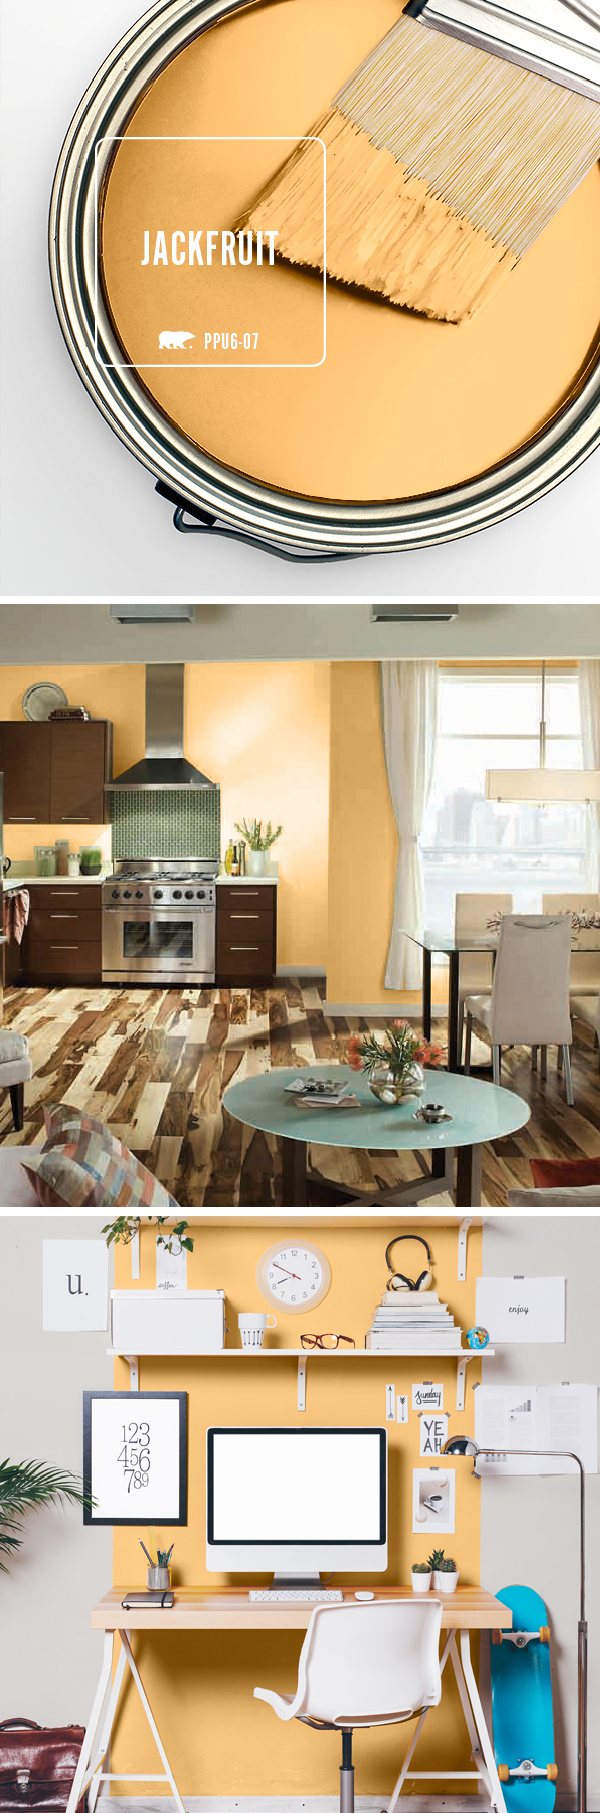 Take the guesswork out of your room remodel and choose this cheery ...